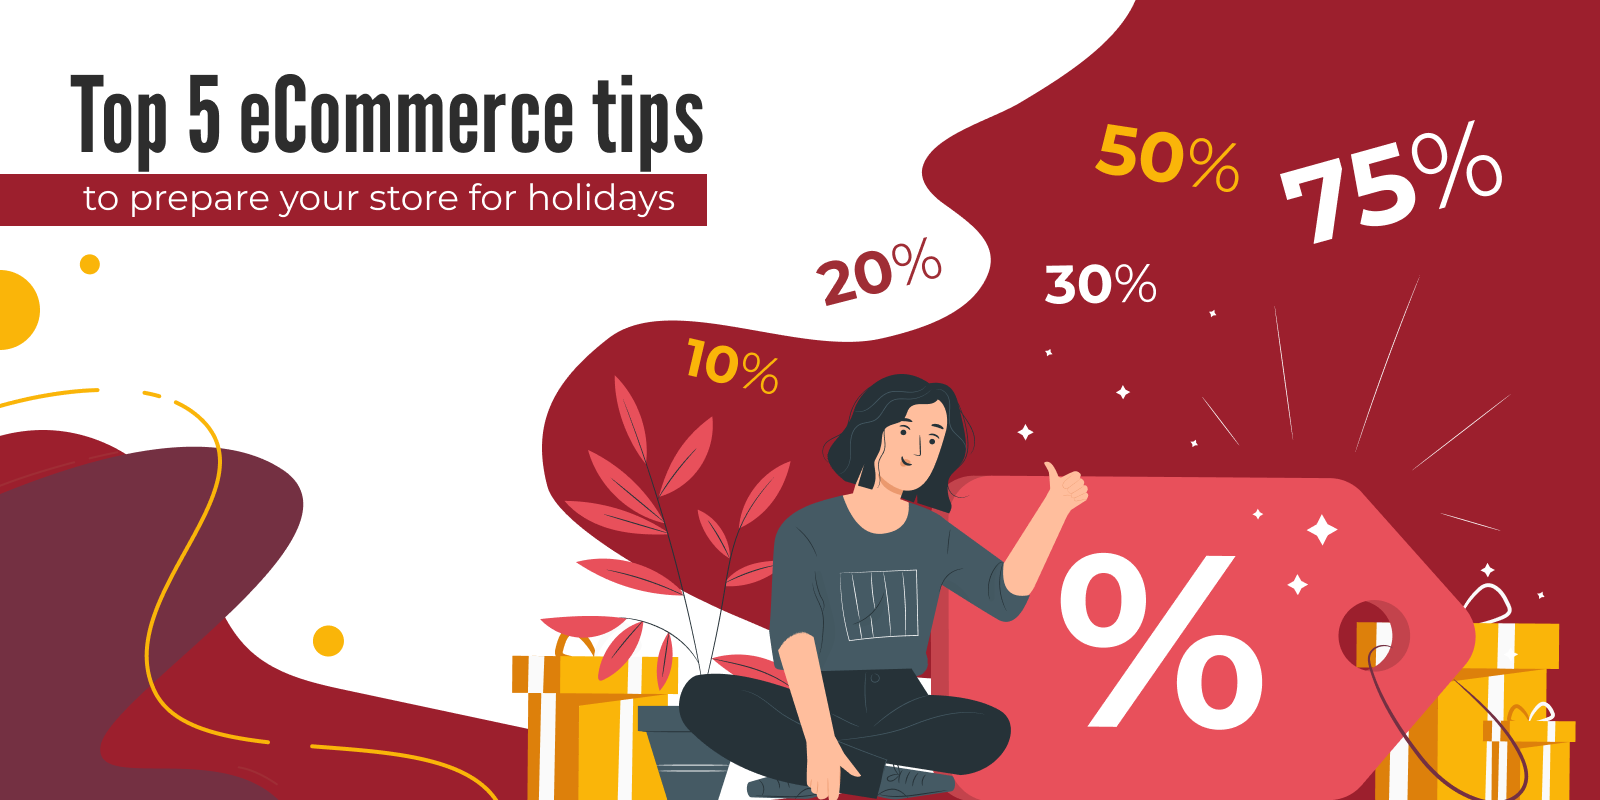 Top 5 eCommerce tips to prepare your store for holidays in 2021